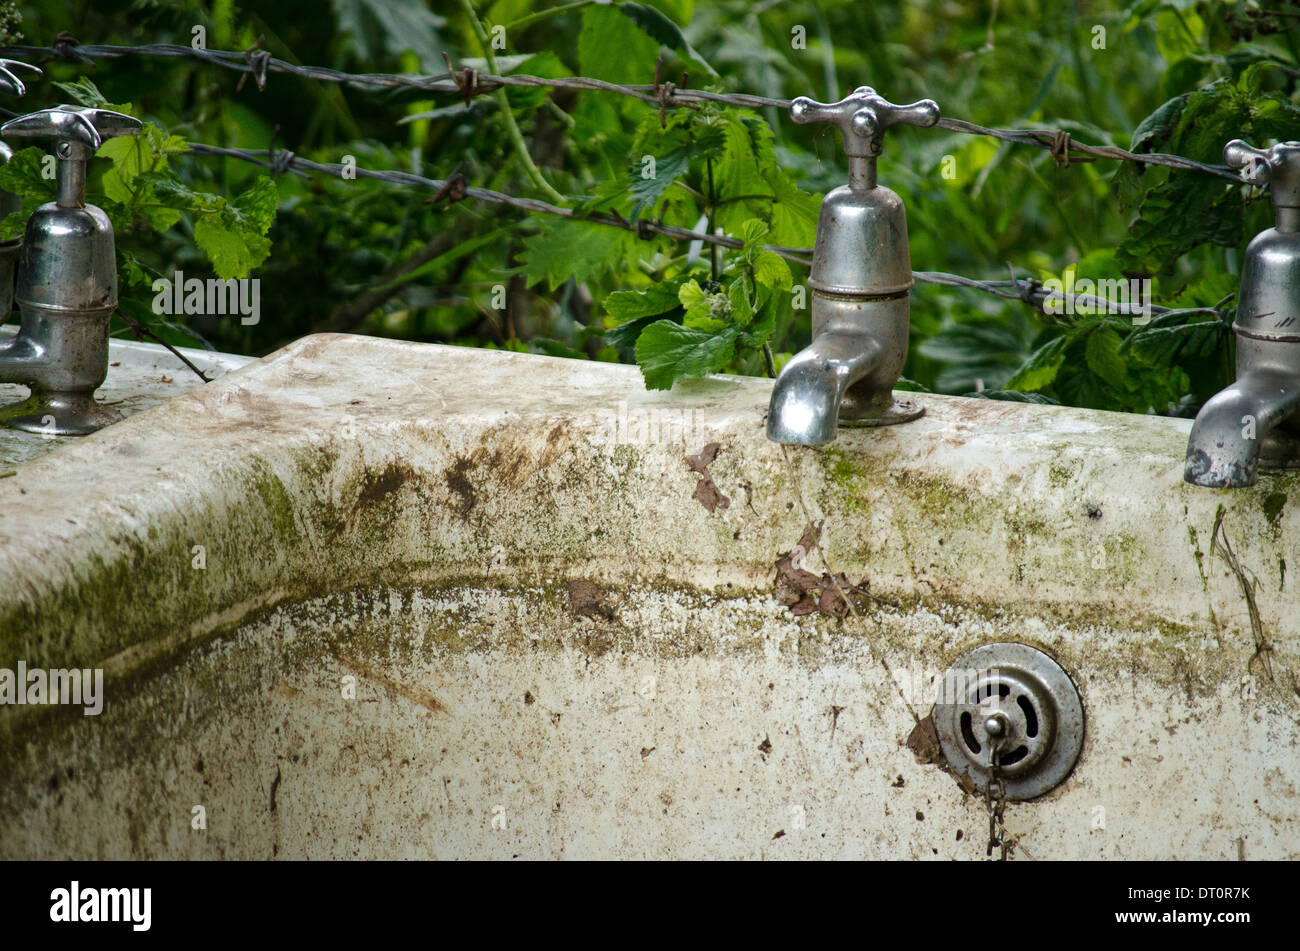 Detail of an old abandoned bath and taps - Stock Image